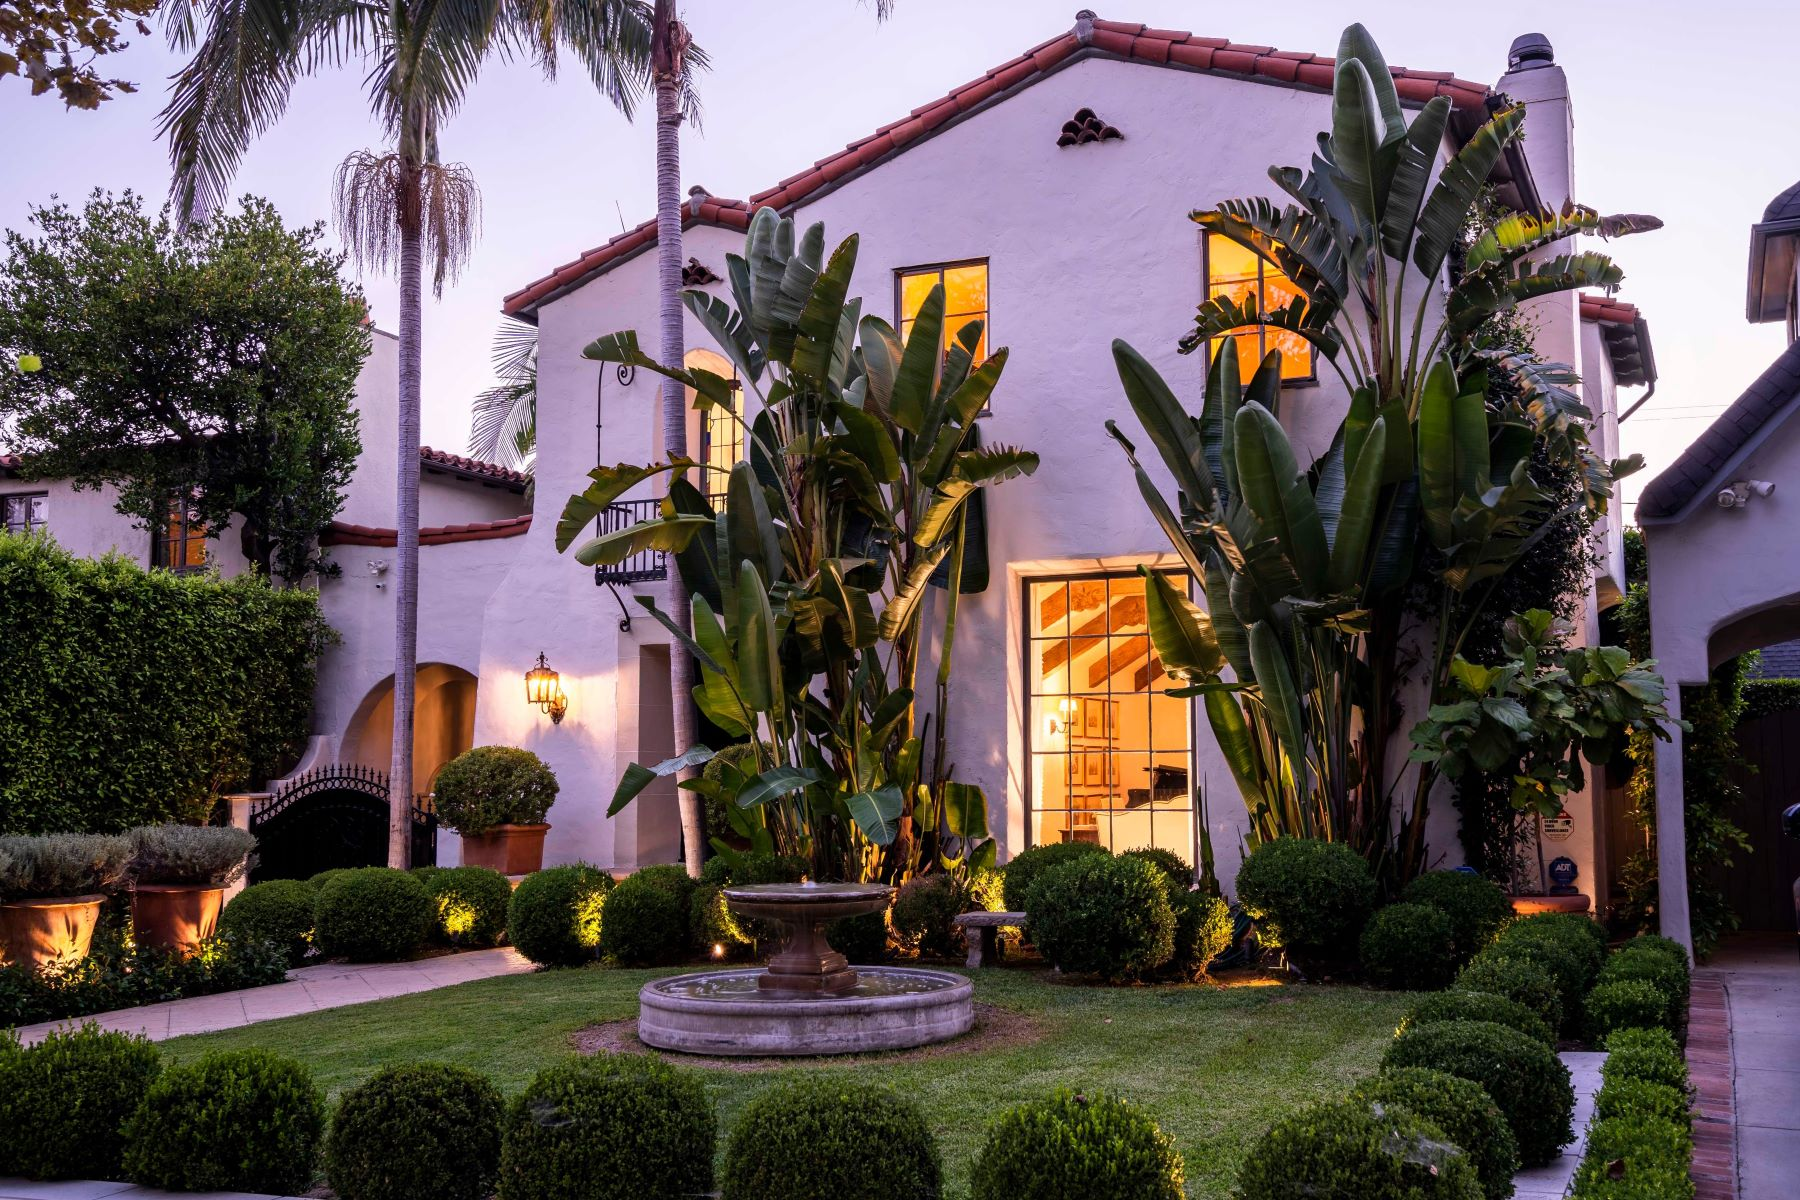 Single Family Homes for Sale at Design Centric Spanish in Hancock Park 617 N June Street Los Angeles, California 90004 United States